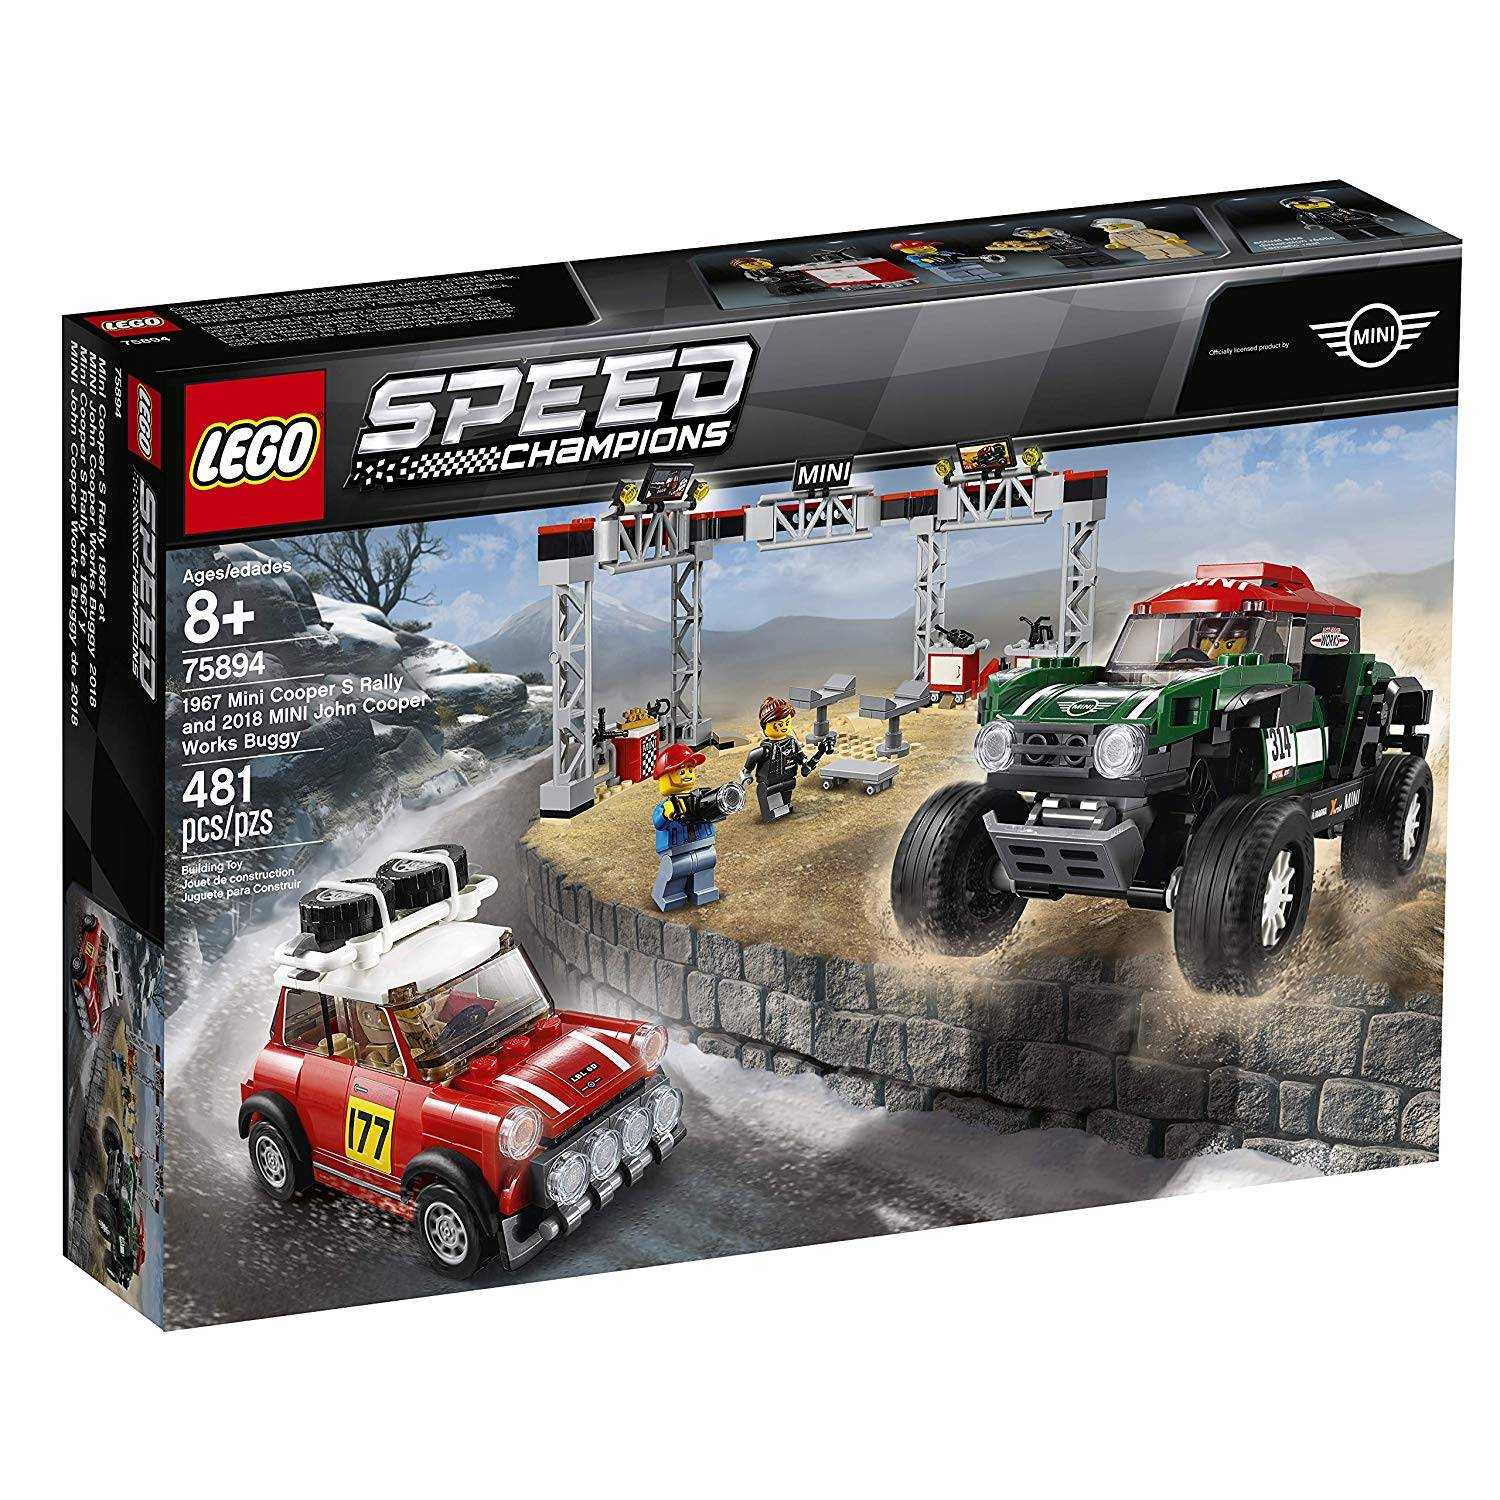 LEGO 75894: 1967 Mini Cooper S Rally and 2018 Mini John Cooper Works Buggy